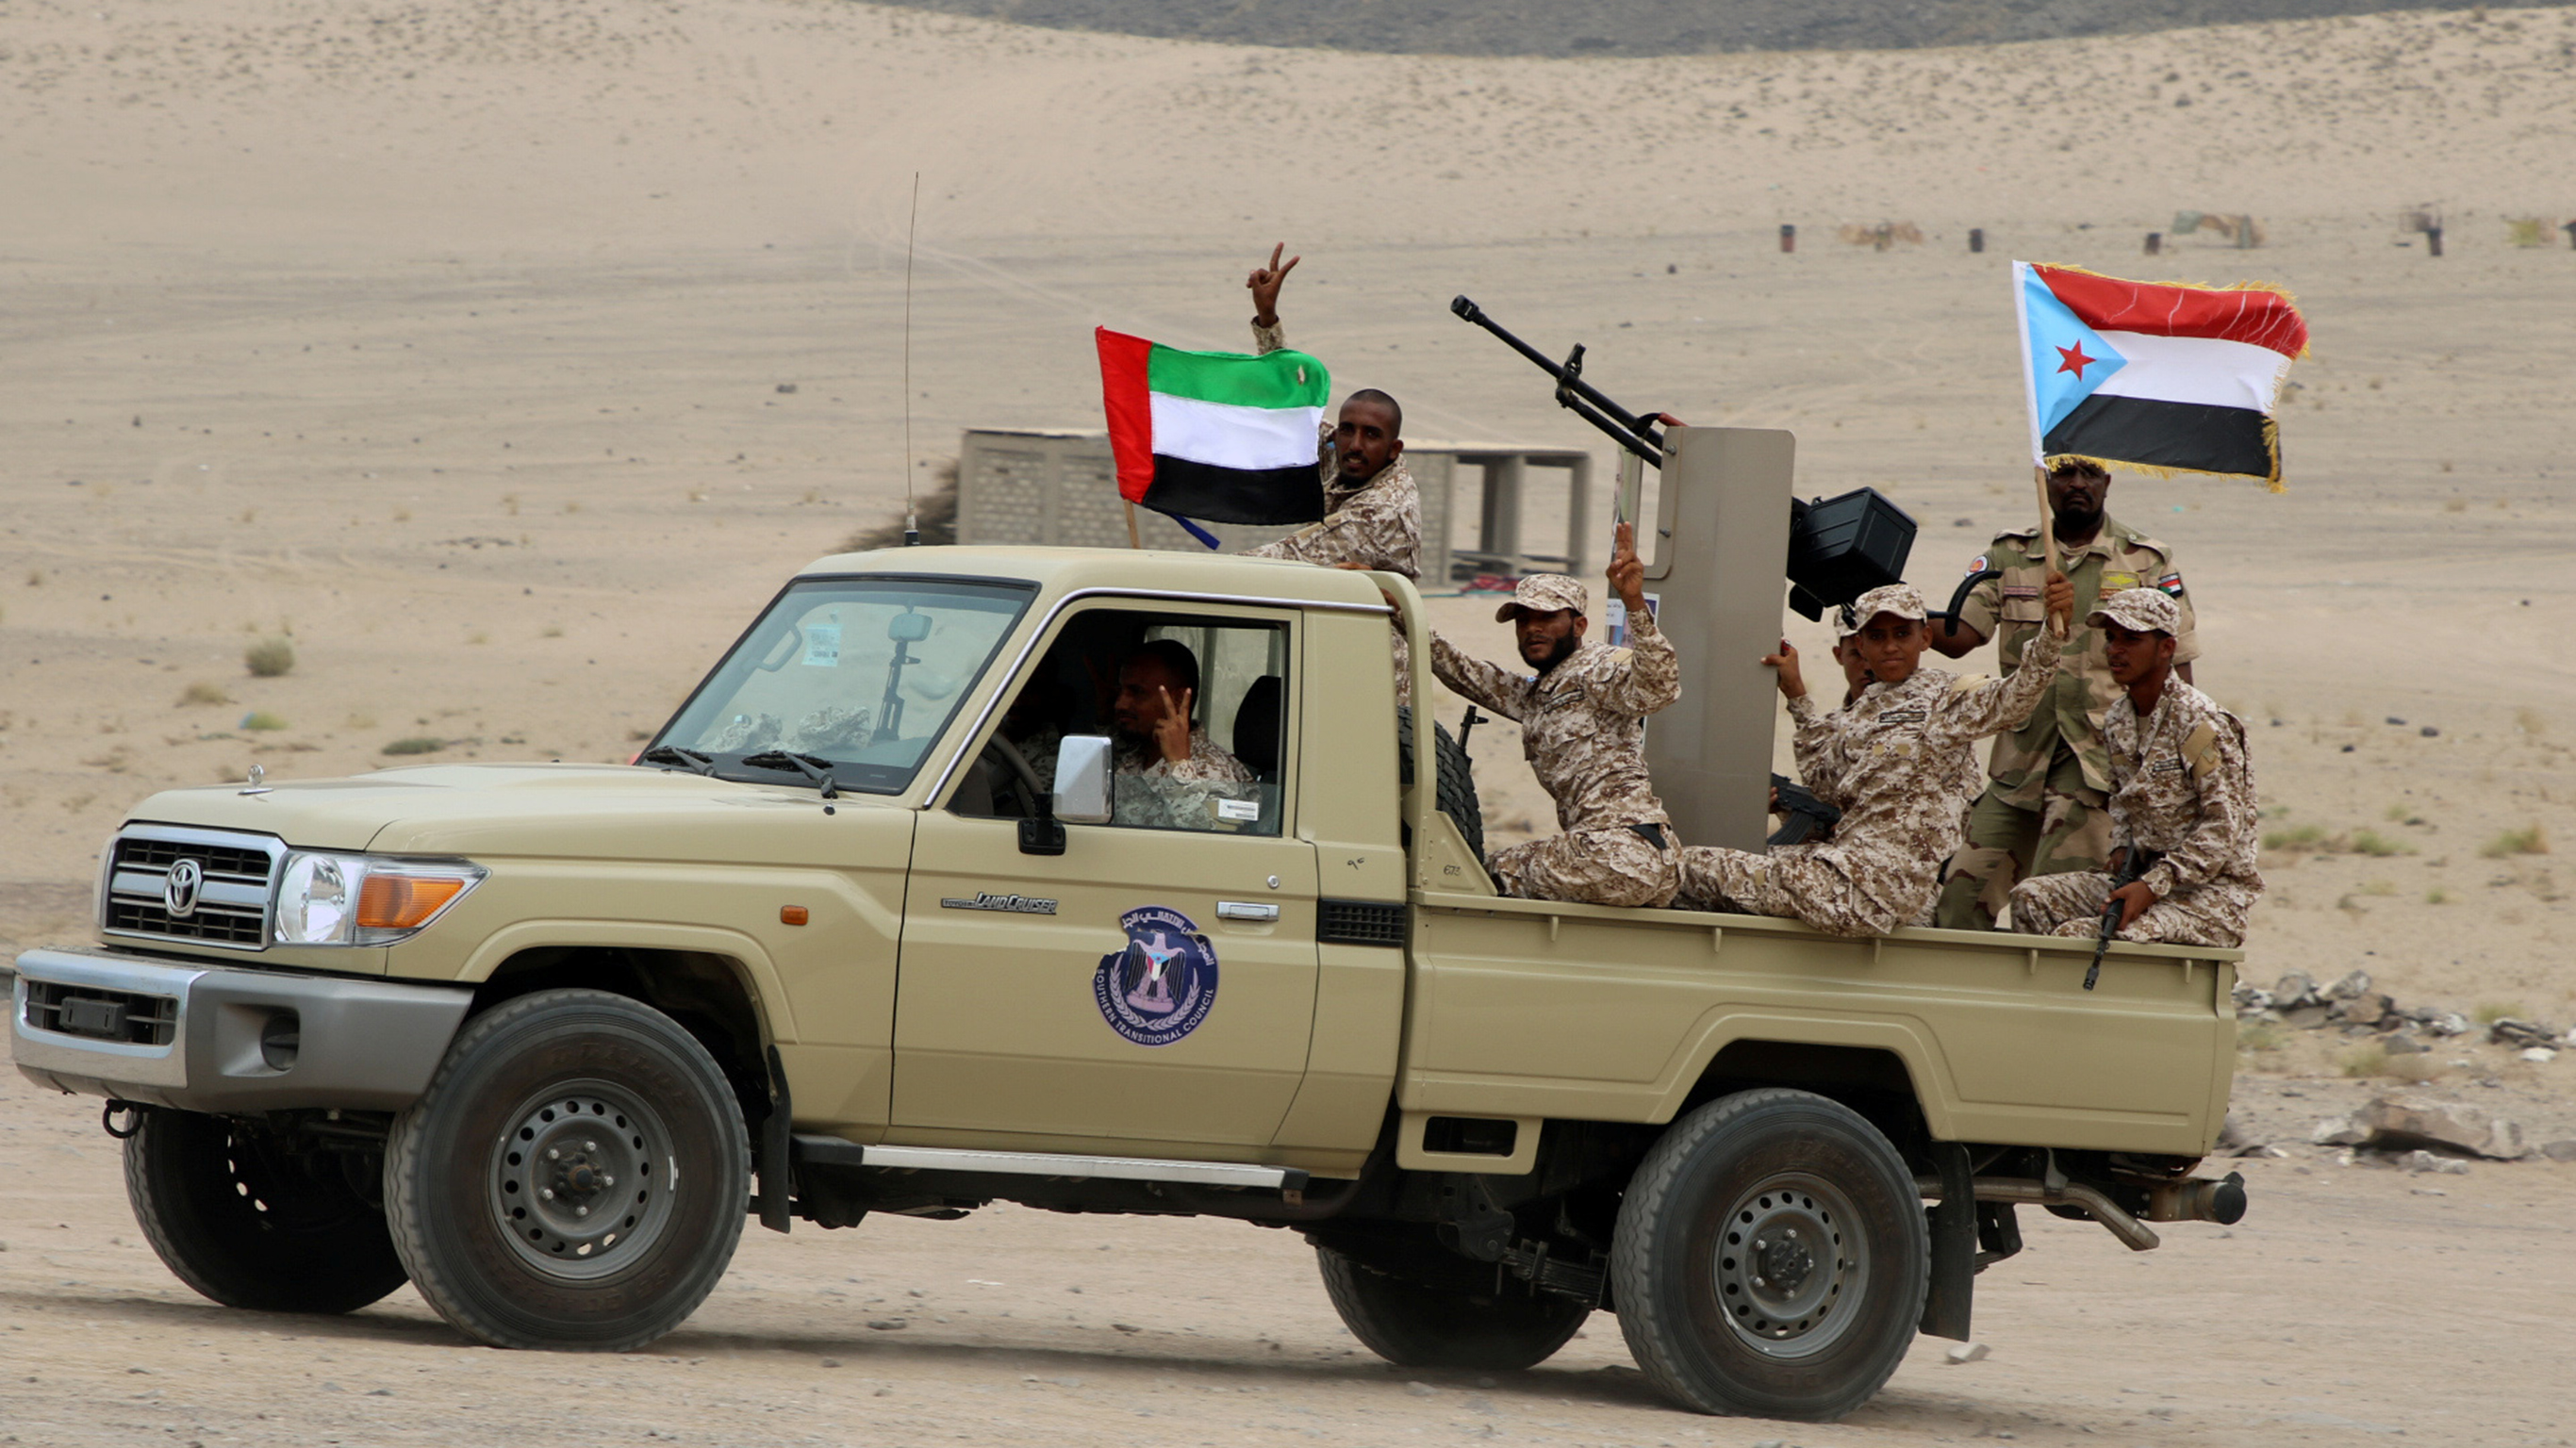 UAE-Backed Southern Transitional Council in Yemen Anounced Capture Of Socotra Island